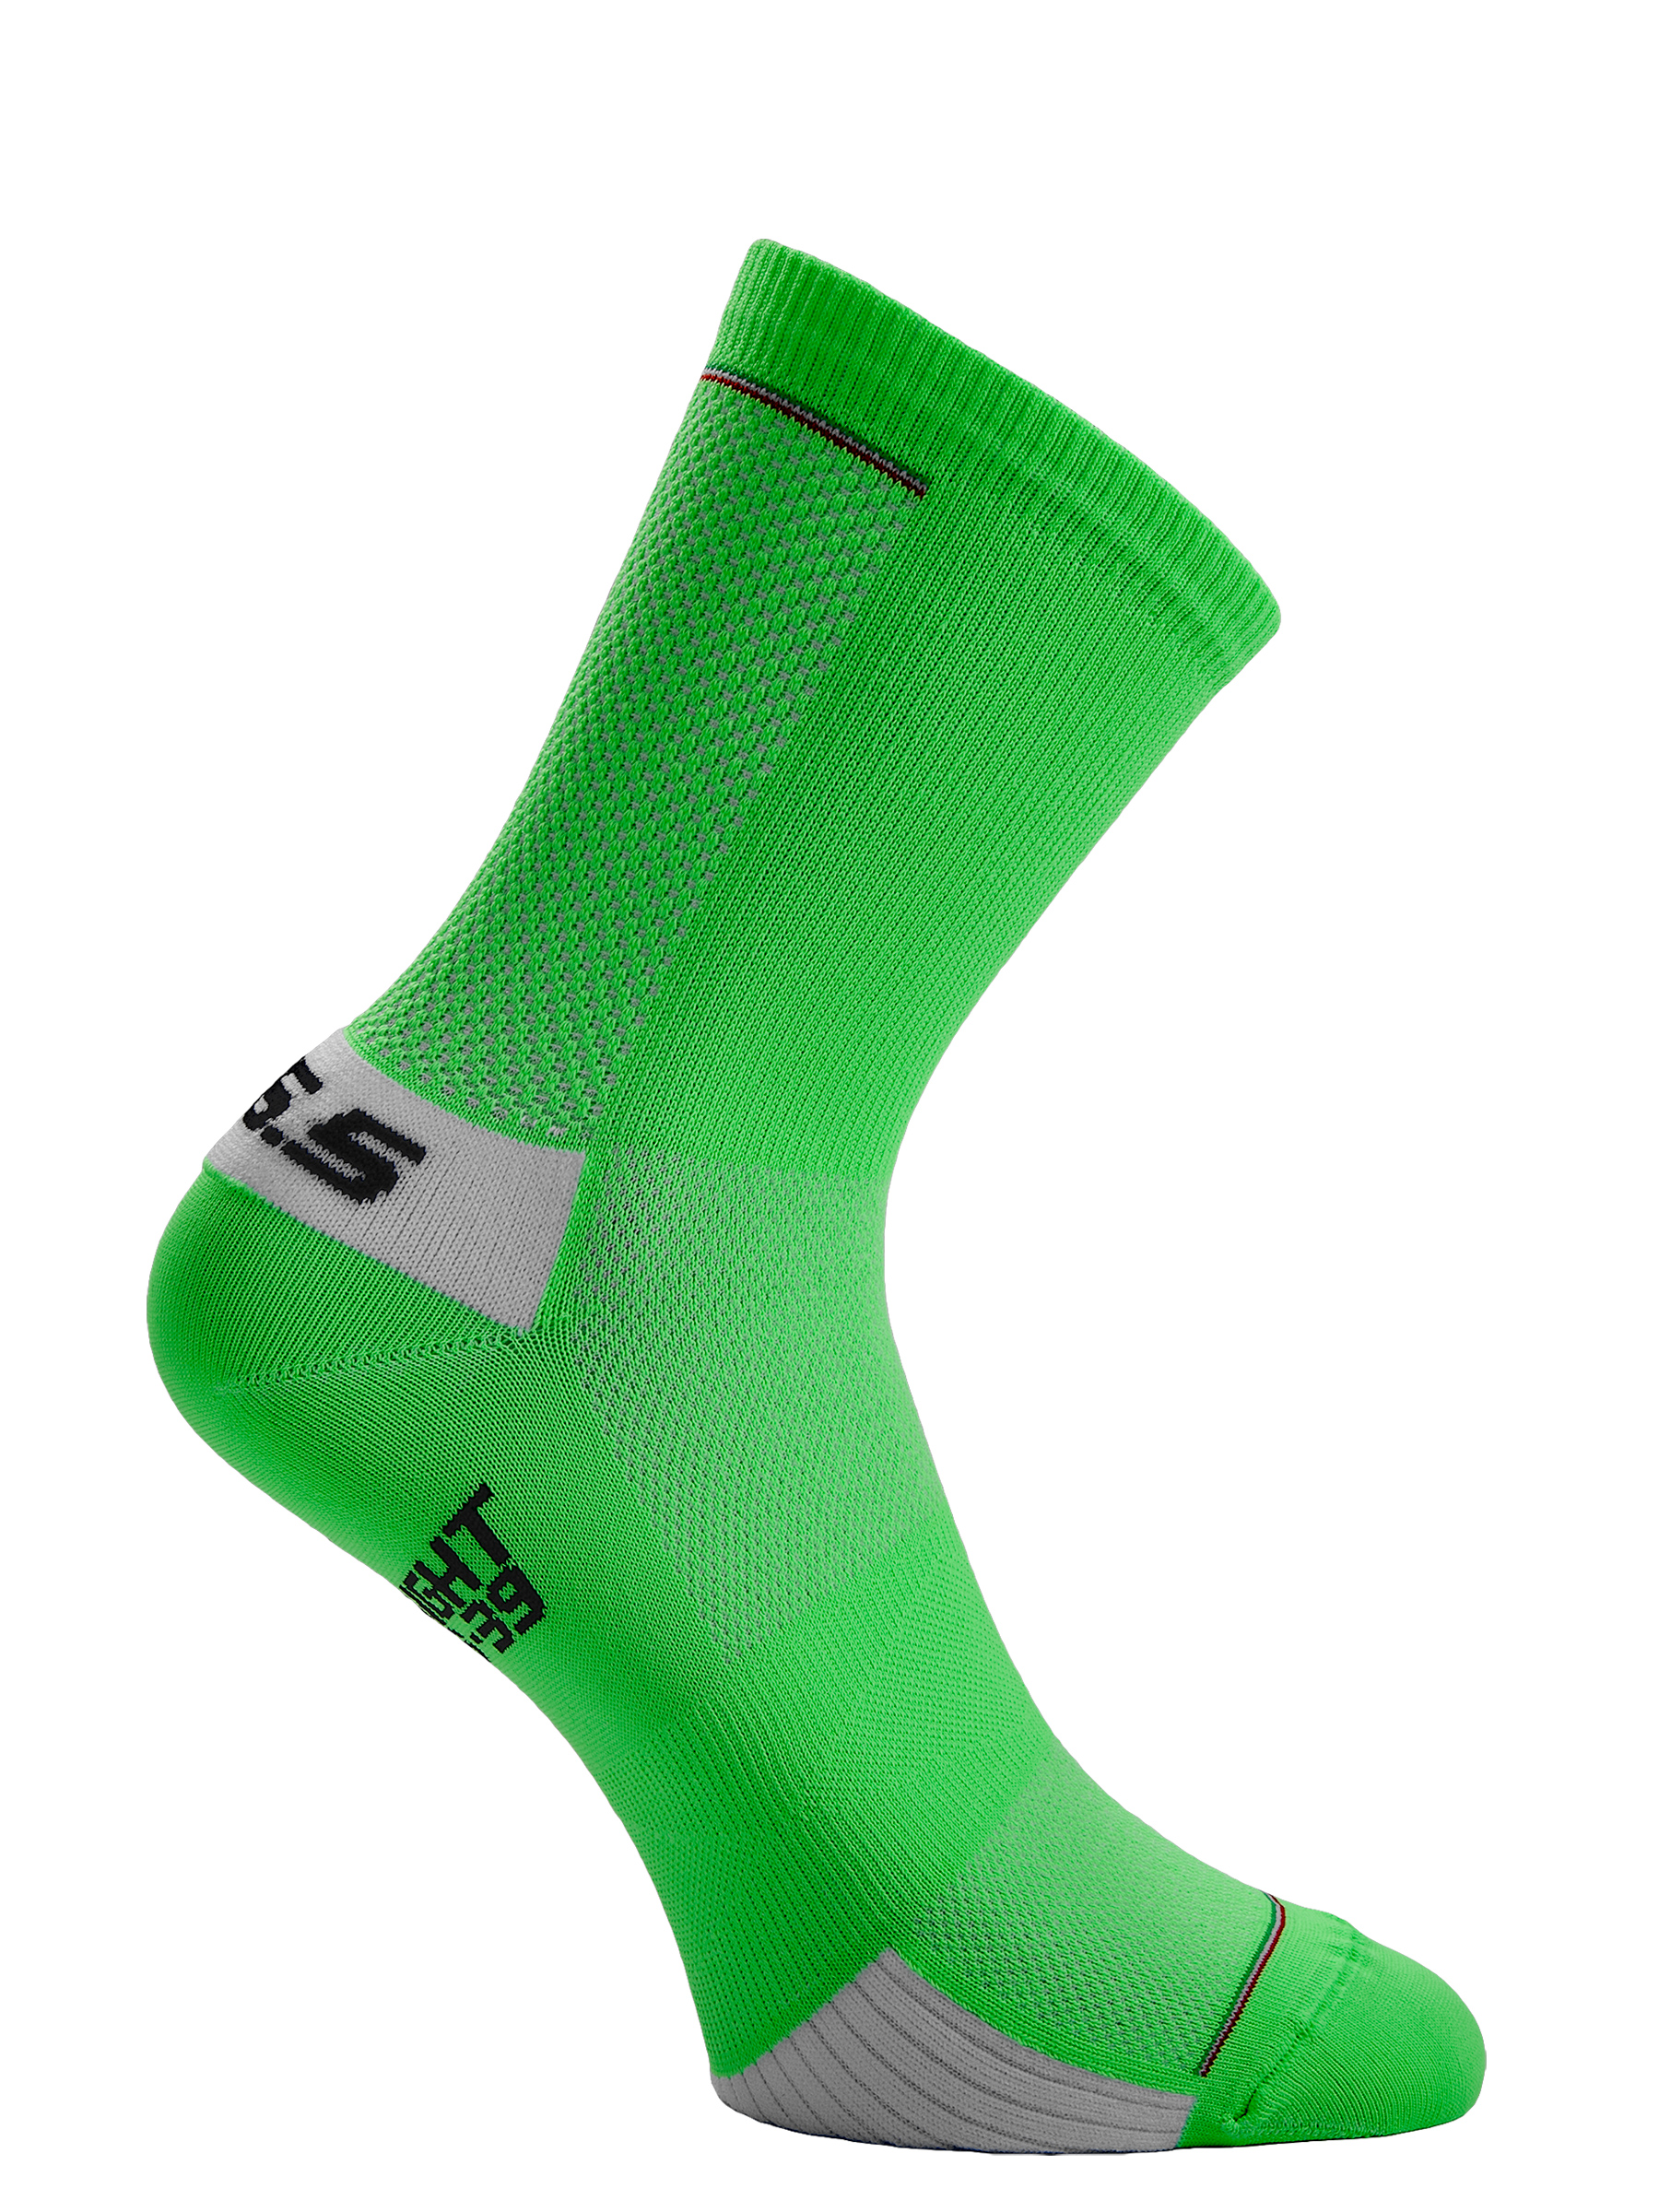 Cycling socks Ultralight green fluo Q36.5 - side